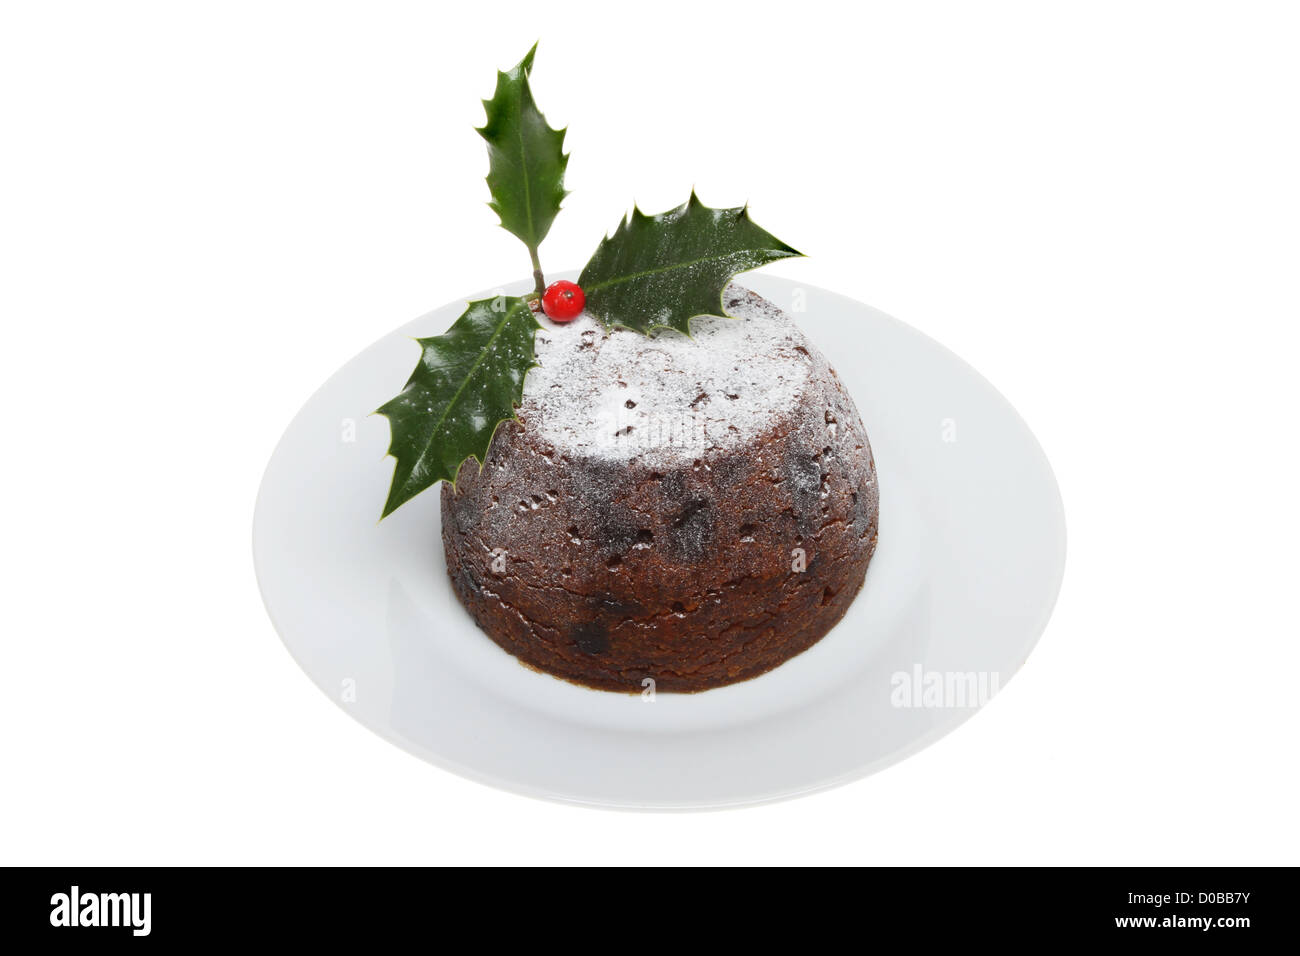 Christmas pudding on a plate decorated with holly and dusted with icing sugar isolated against white - Stock Image